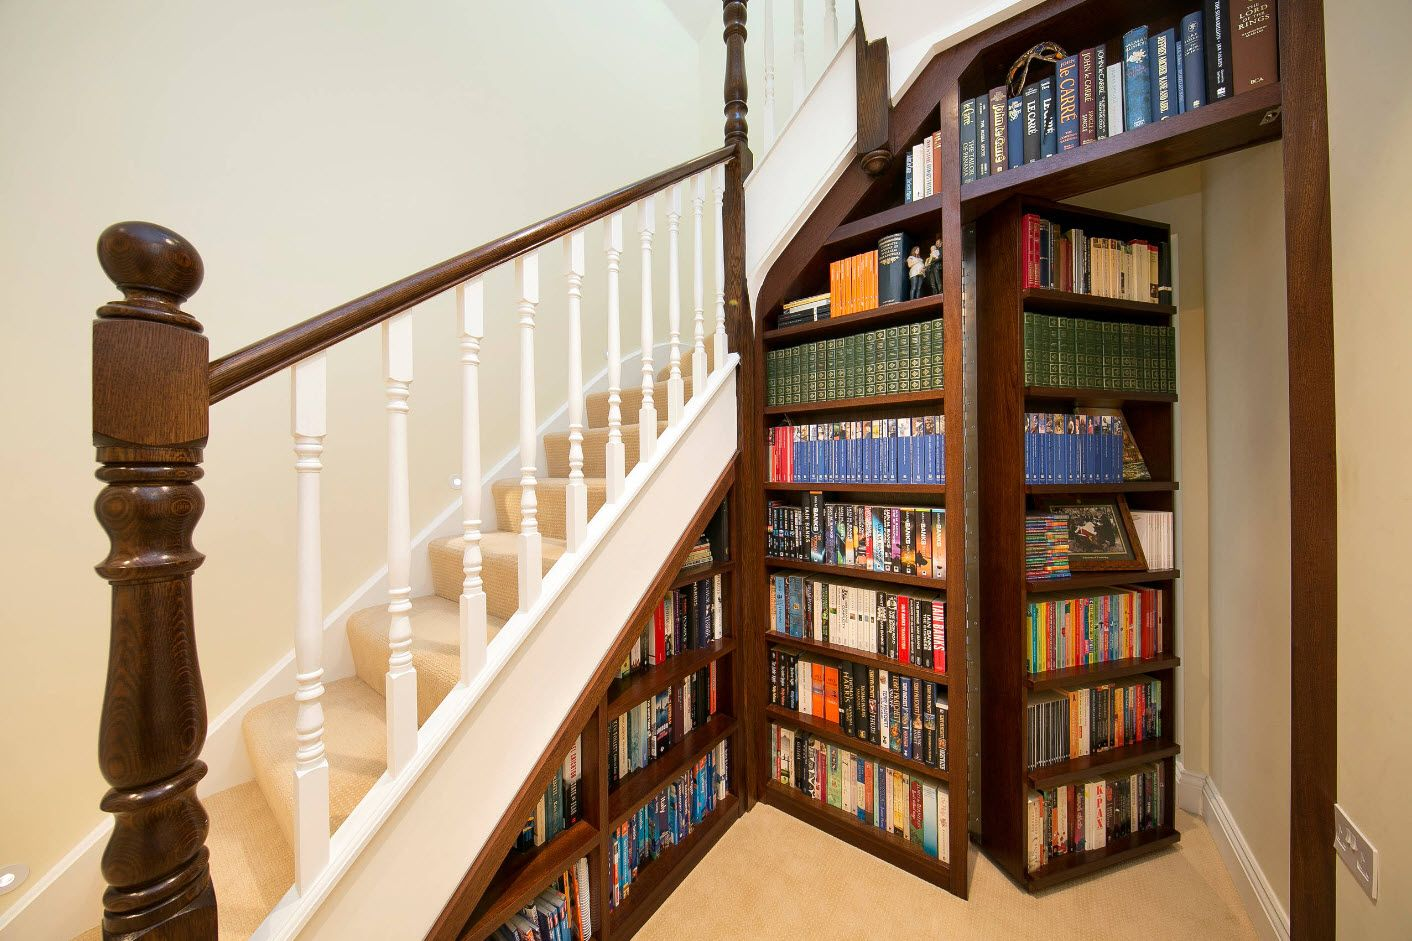 Top 100 Modern Home Office Design Trends 2017. Unusual book shelving as at the library